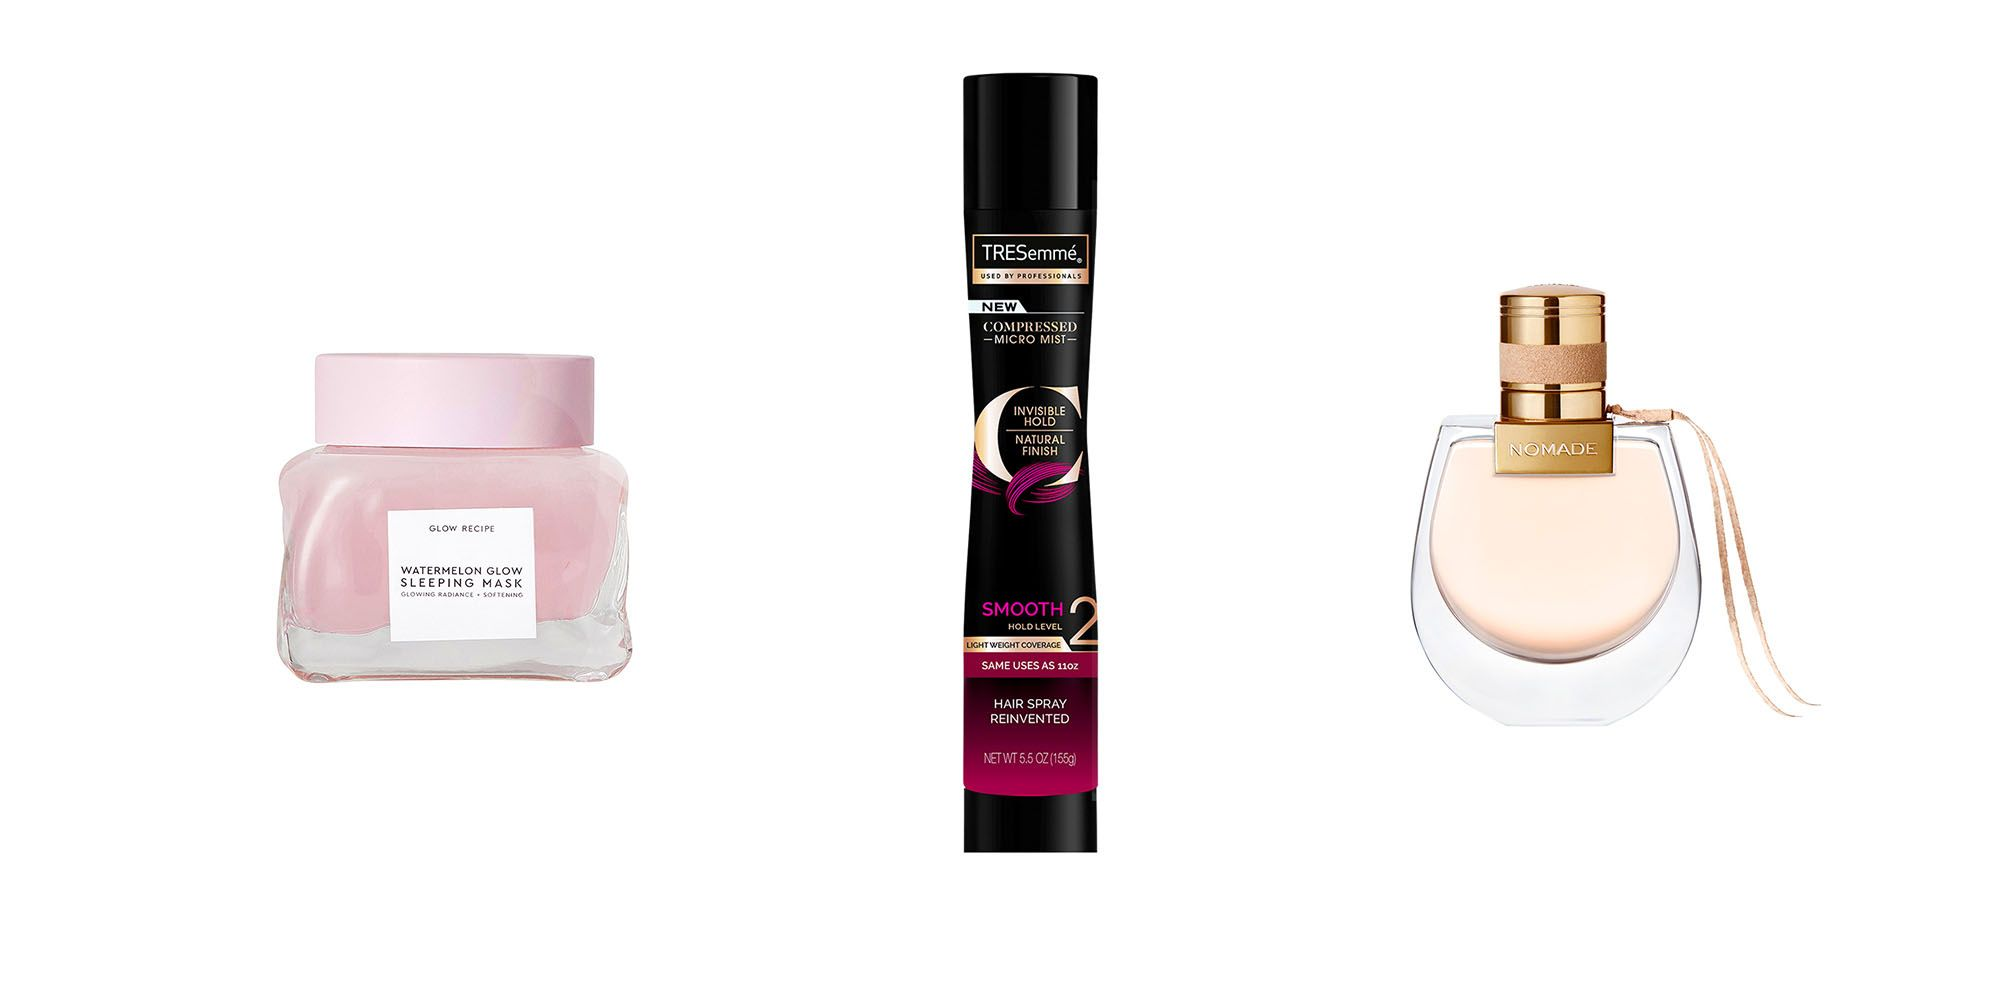 Glow Recipe watermelon mask, tresseme hair spray, chloe perfume